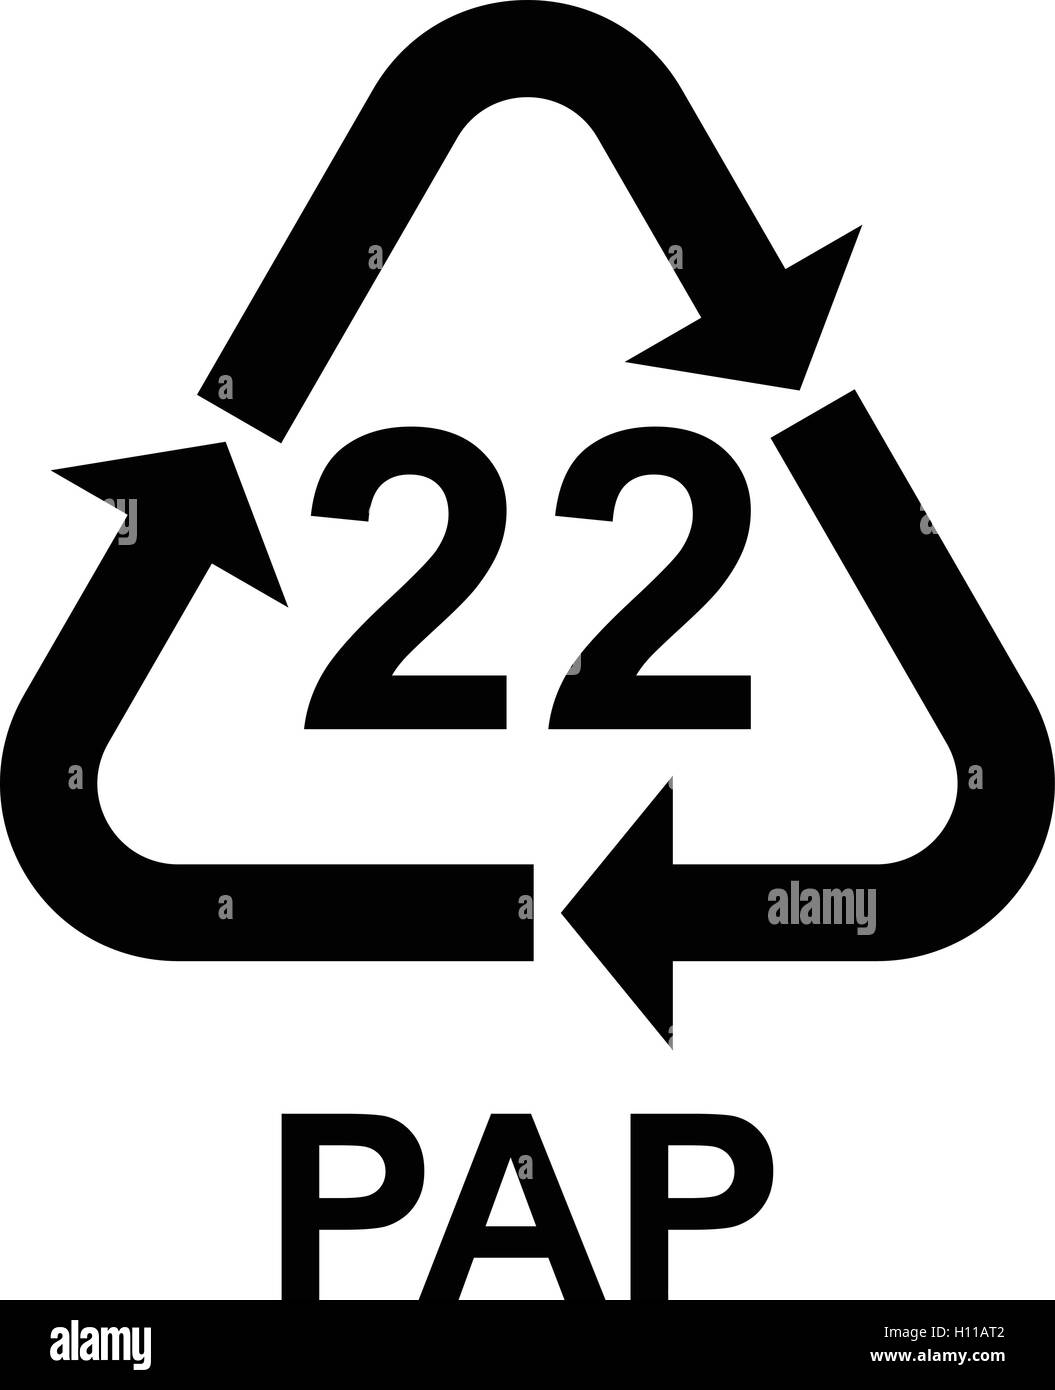 Paper recycling symbol pap 22 cardboard vector illustration stock paper recycling symbol pap 22 cardboard vector illustration buycottarizona